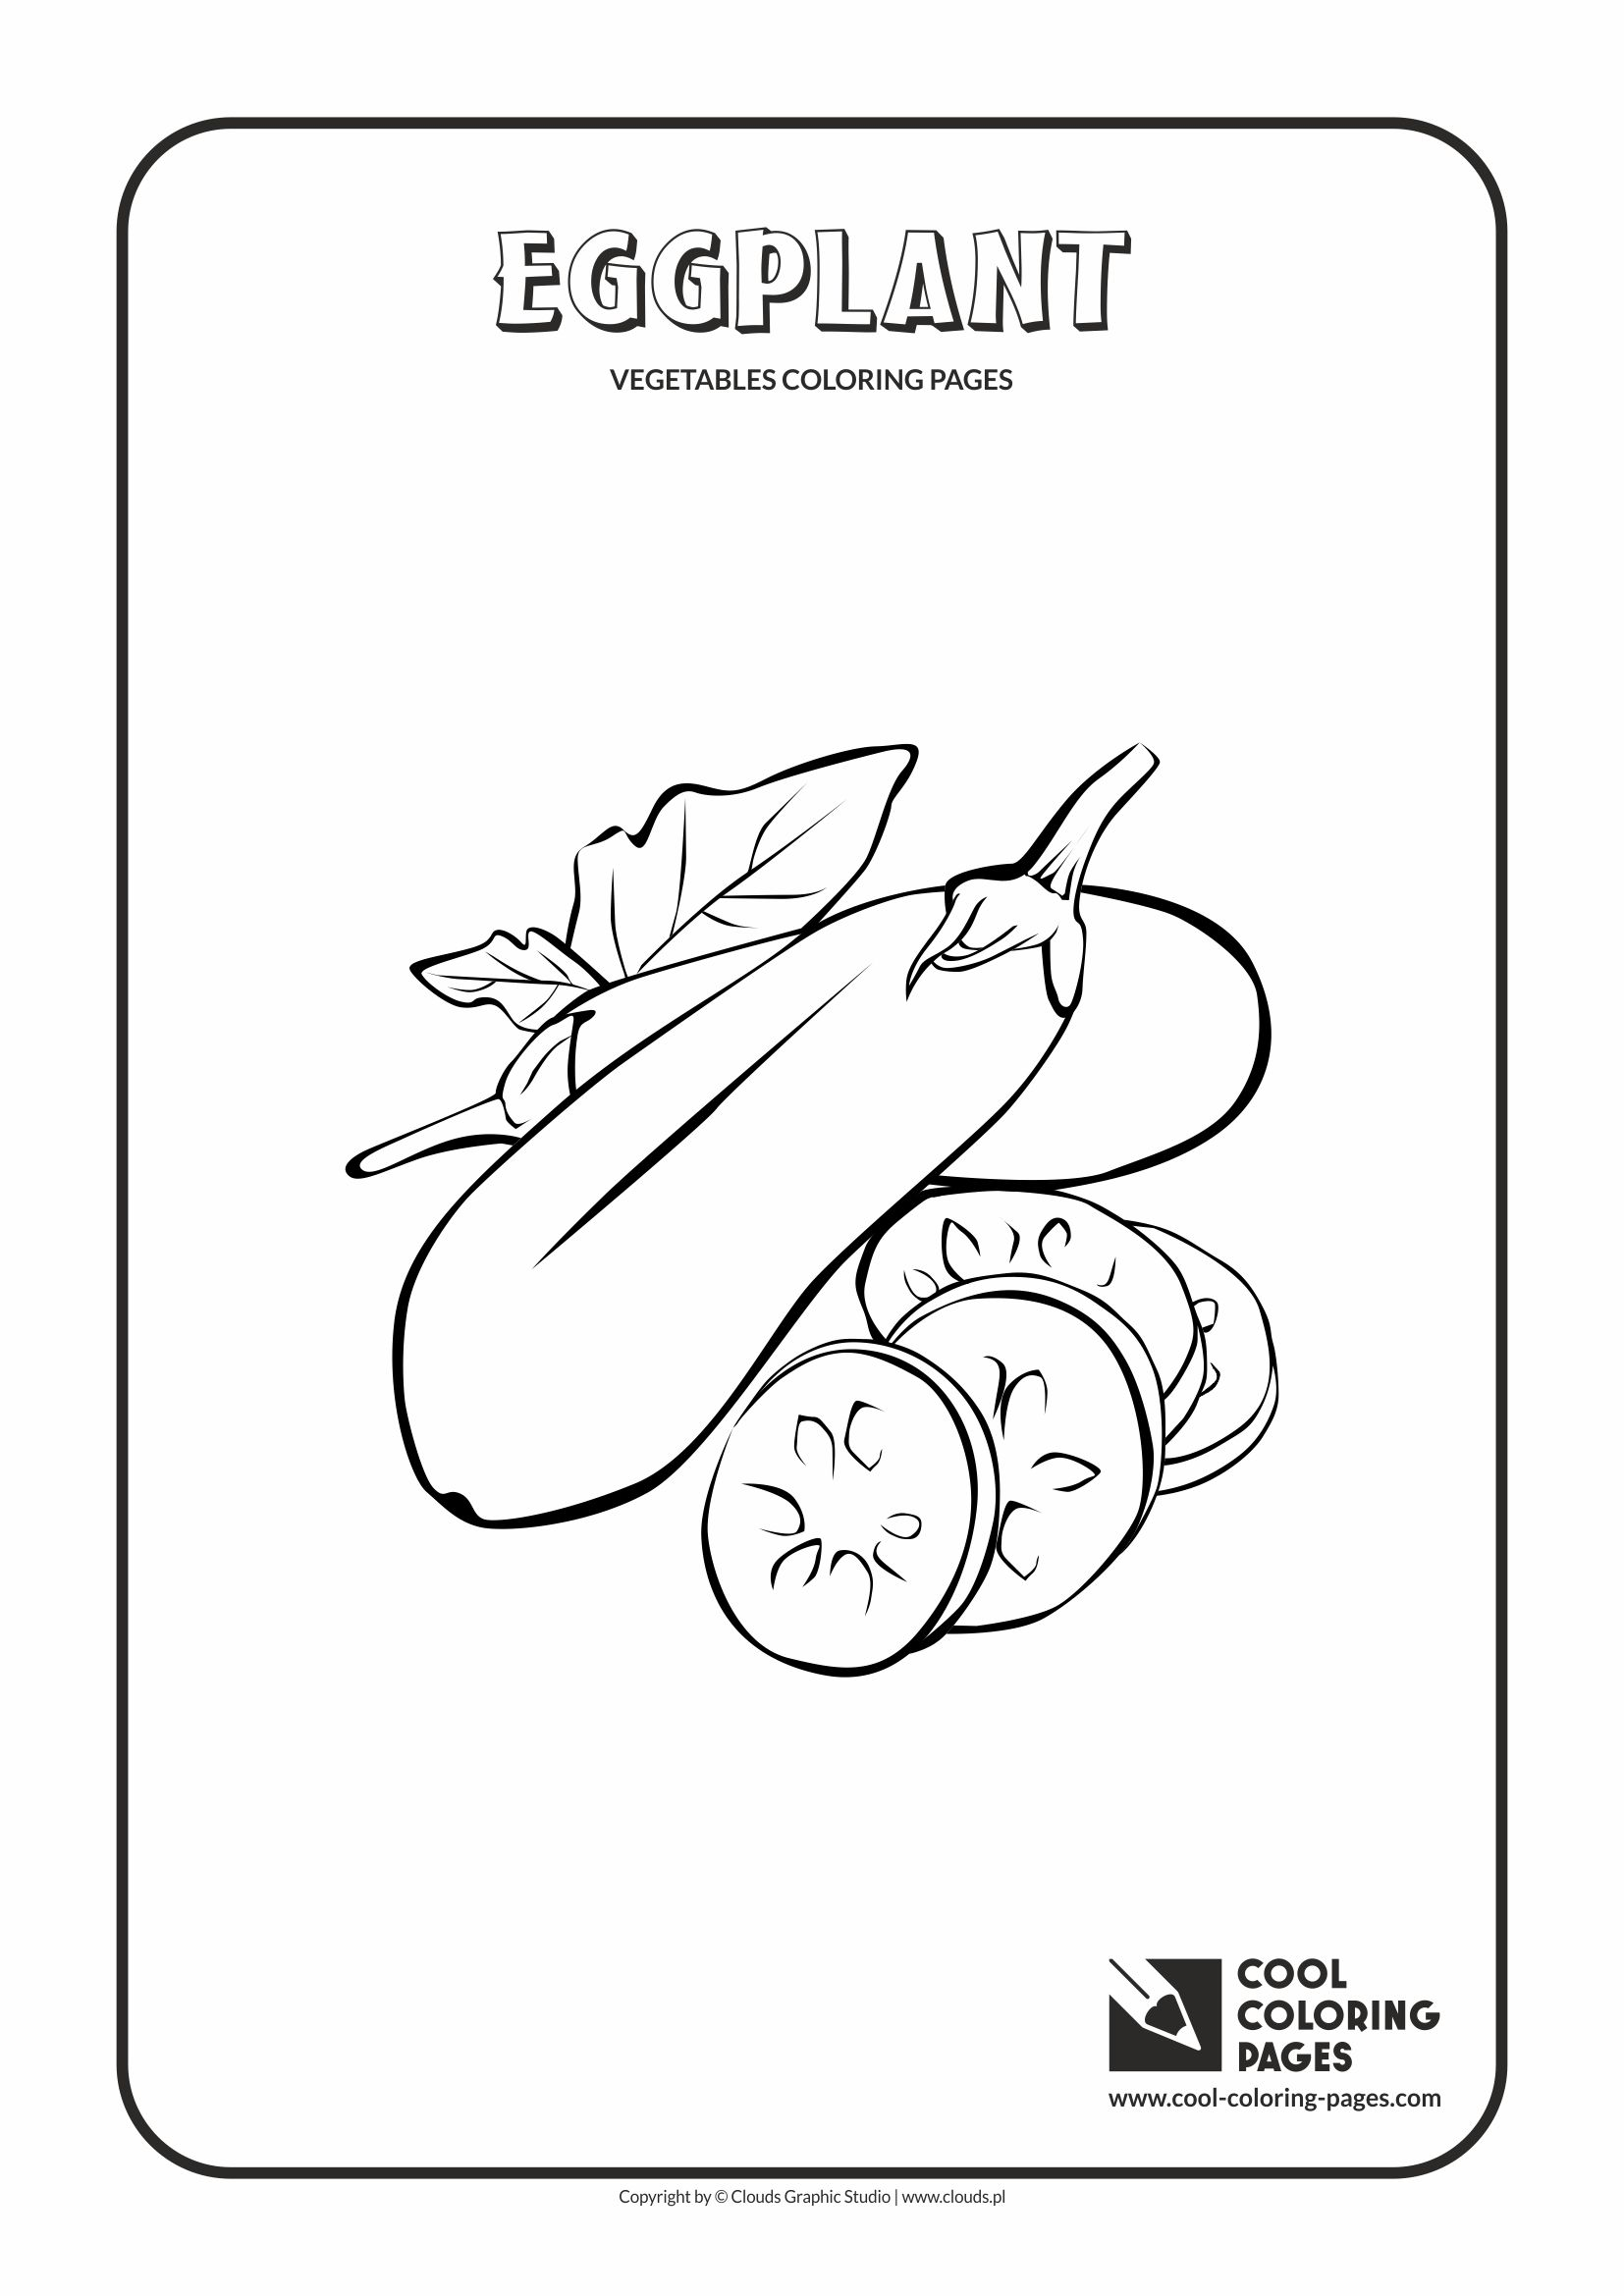 Cool Coloring Pages - Plants / Eggplant / Coloring page with eggplant